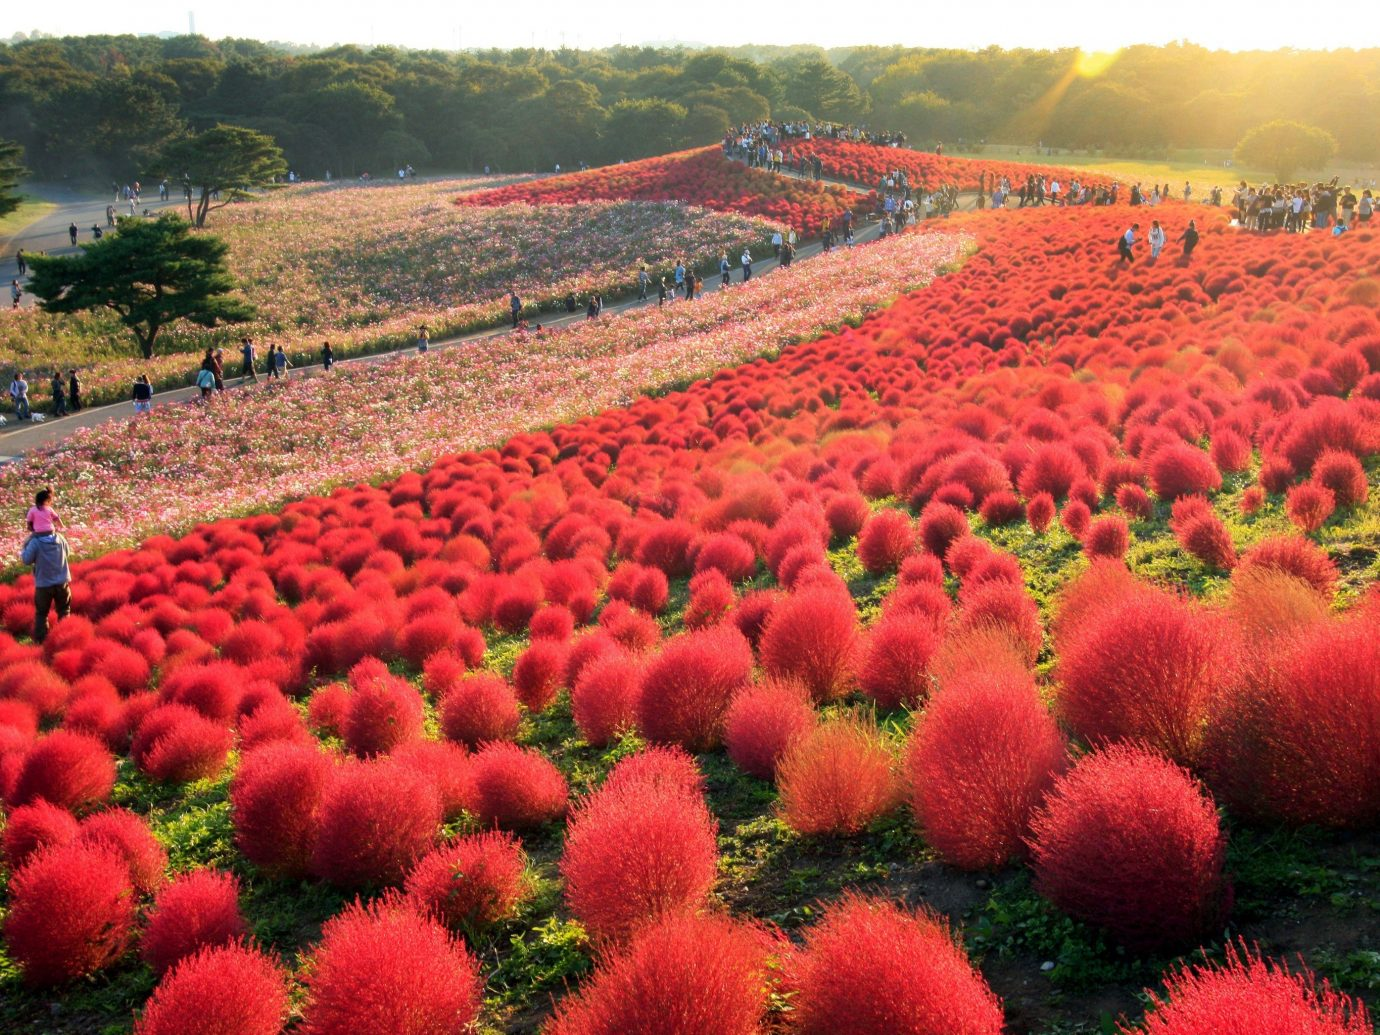 Trip Ideas grass flower outdoor plant field land plant flowering plant daisy family soil tulip annual plant colorful Garden colored crowd